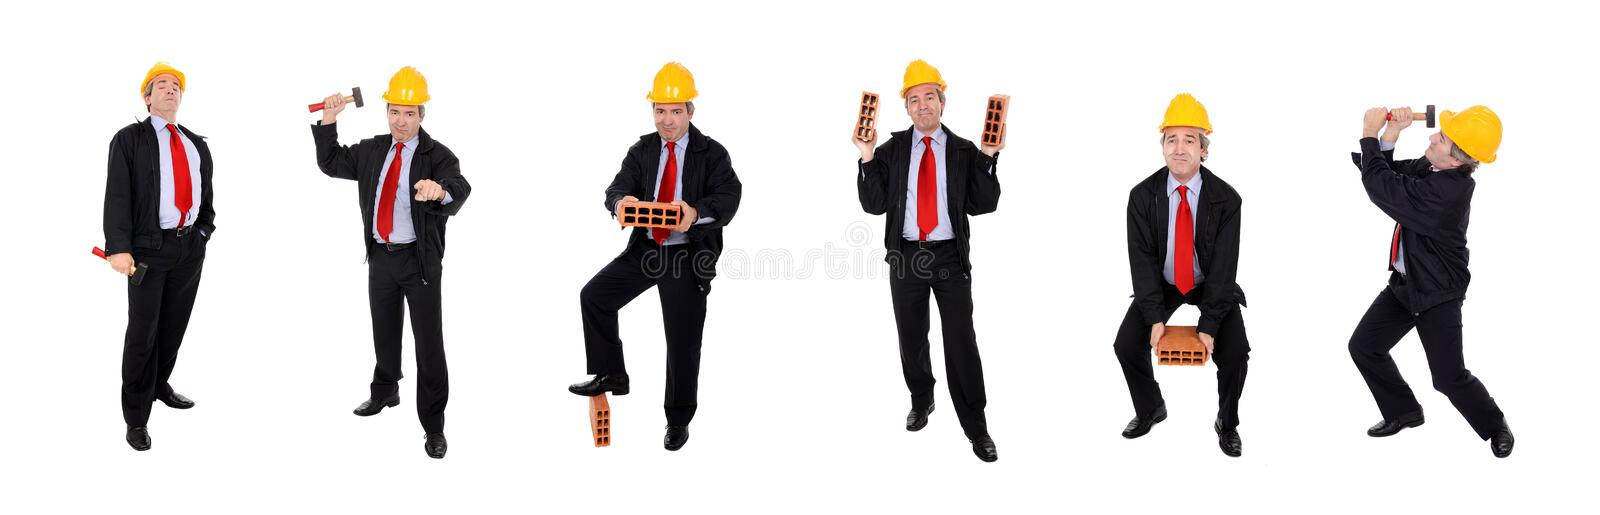 Download Group of men with hardhat stock photo. Image of construction - 7306348